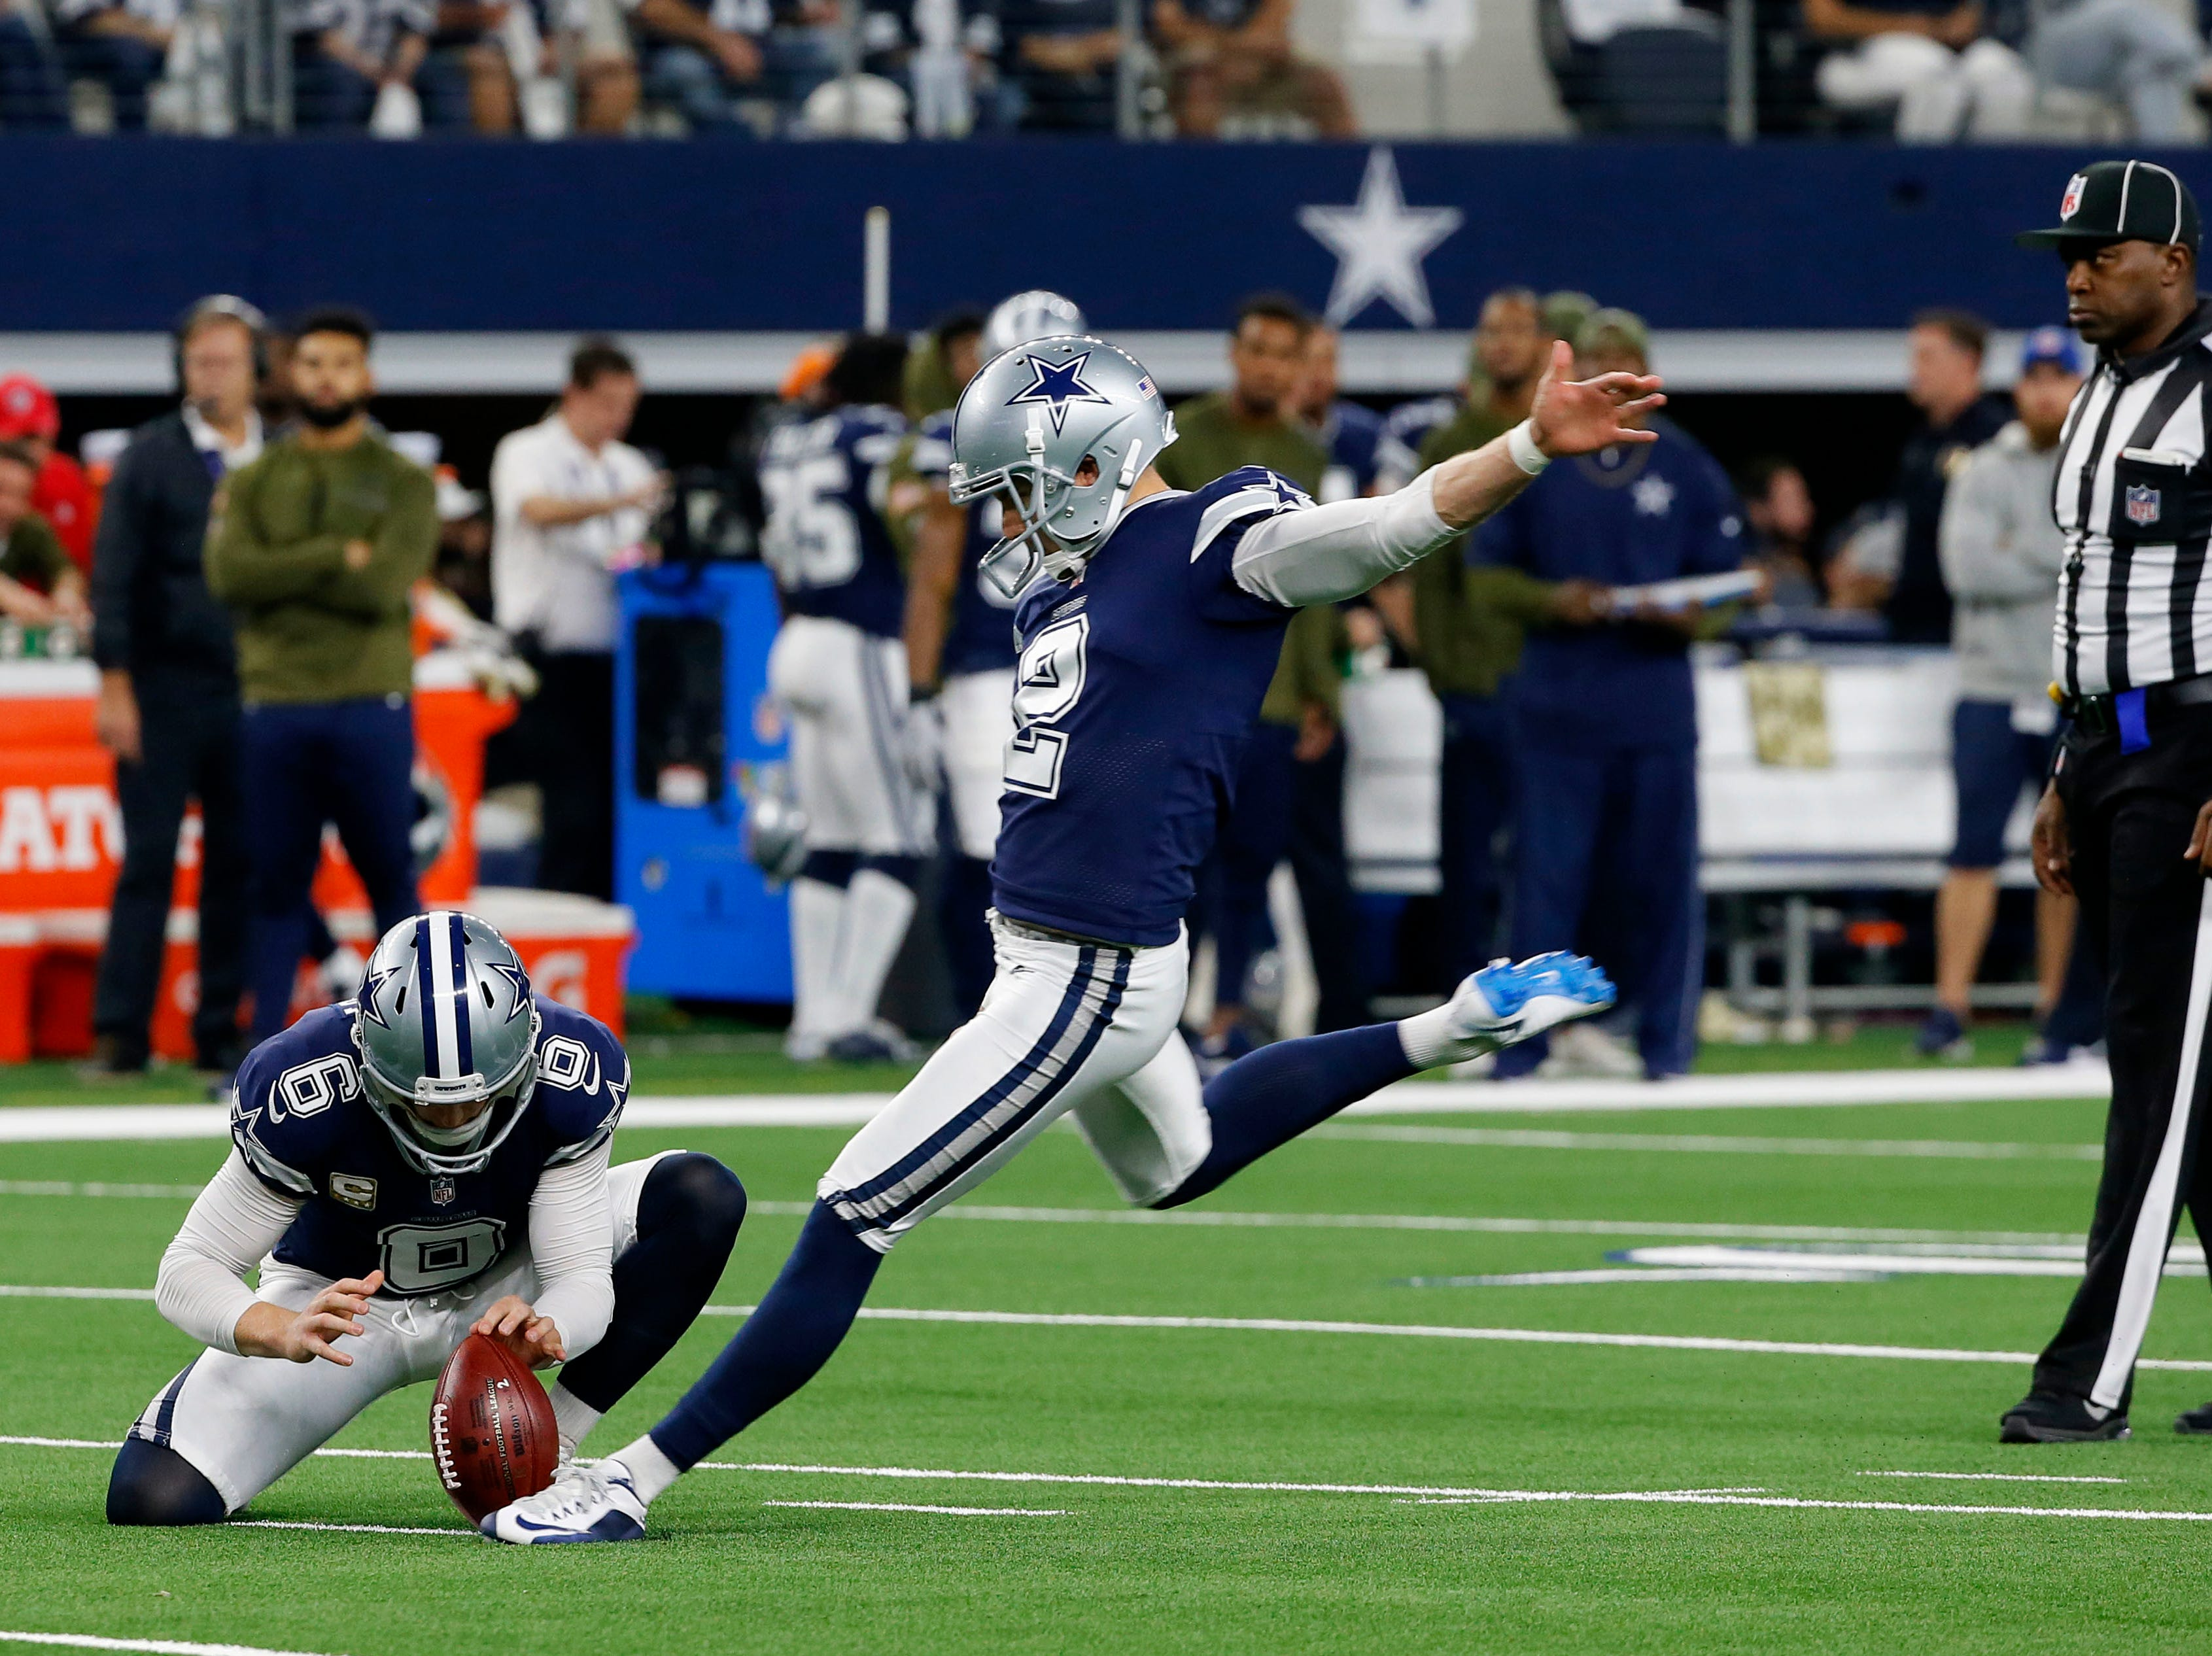 Dallas Cowboys kicker Brett Maher (2) attempts a field goal as Chris Jones (6) holds the ball during the first half of an NFL football game between the Dallas Cowboys and Tennessee Titans in Arlington, Texas, Monday, Nov. 5, 2018. The Tennessee Titans won 28-14. (AP Photo/Roger Steinman)